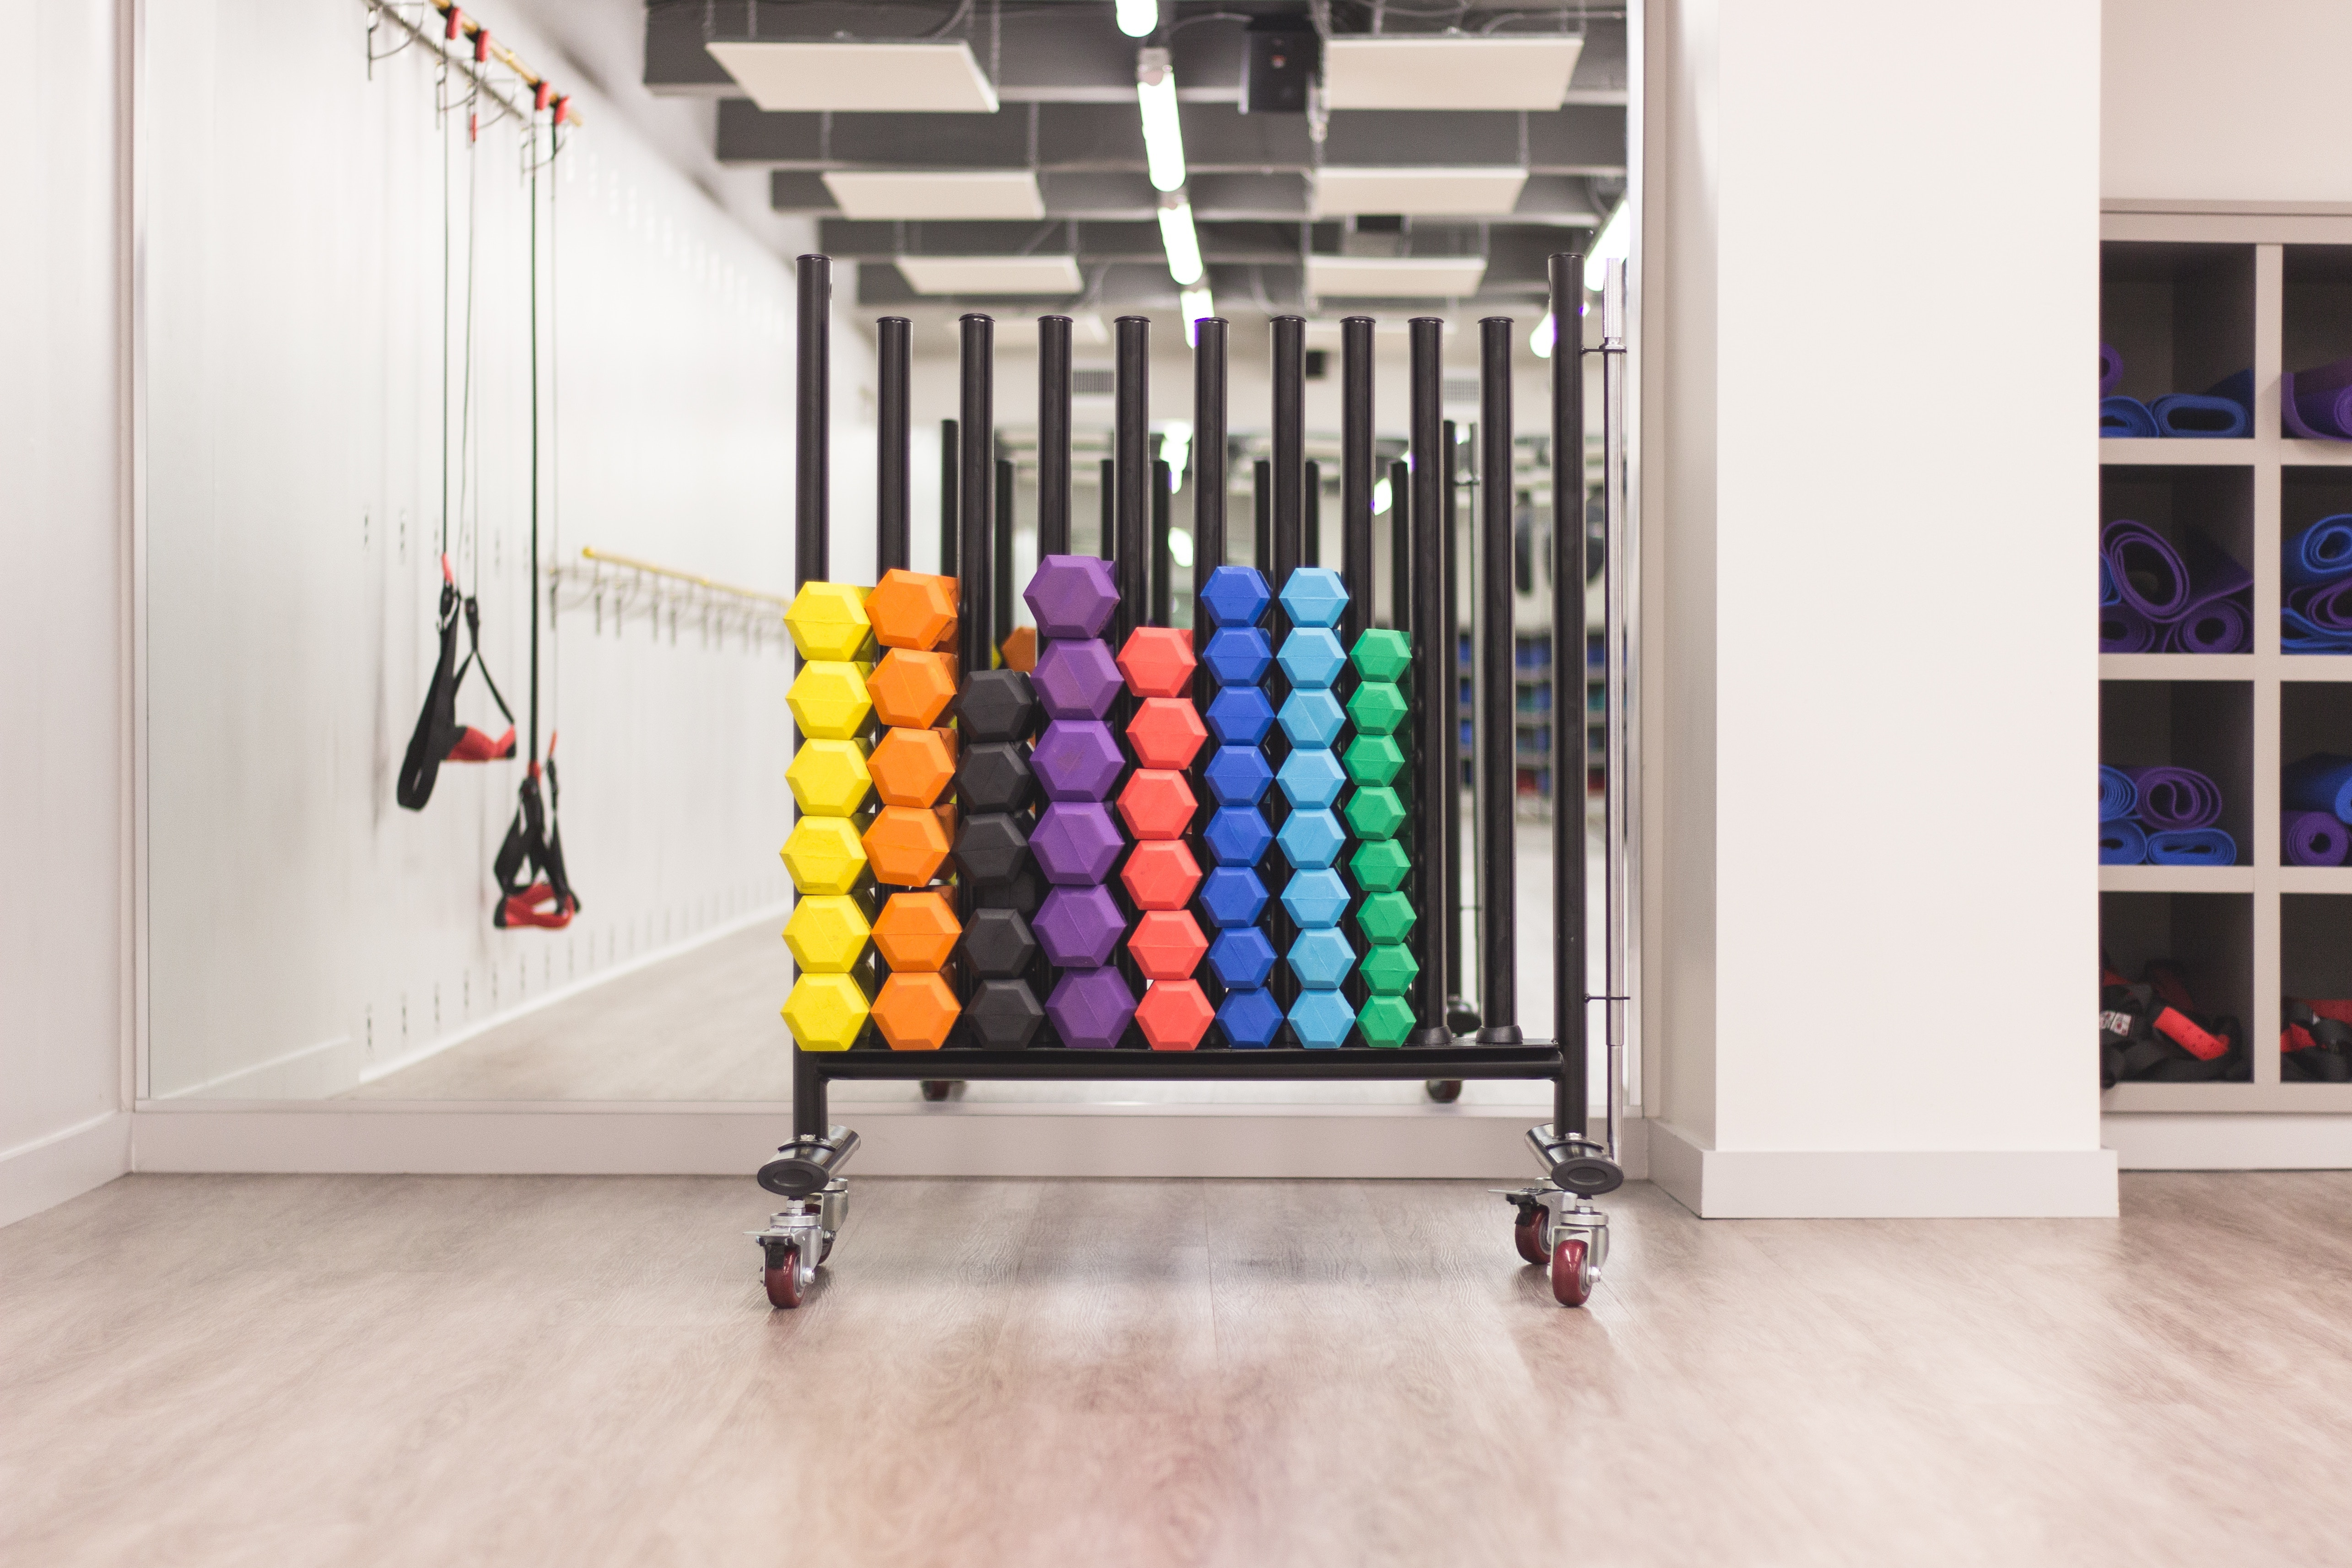 Fitness rack filled with colorful dumbbells